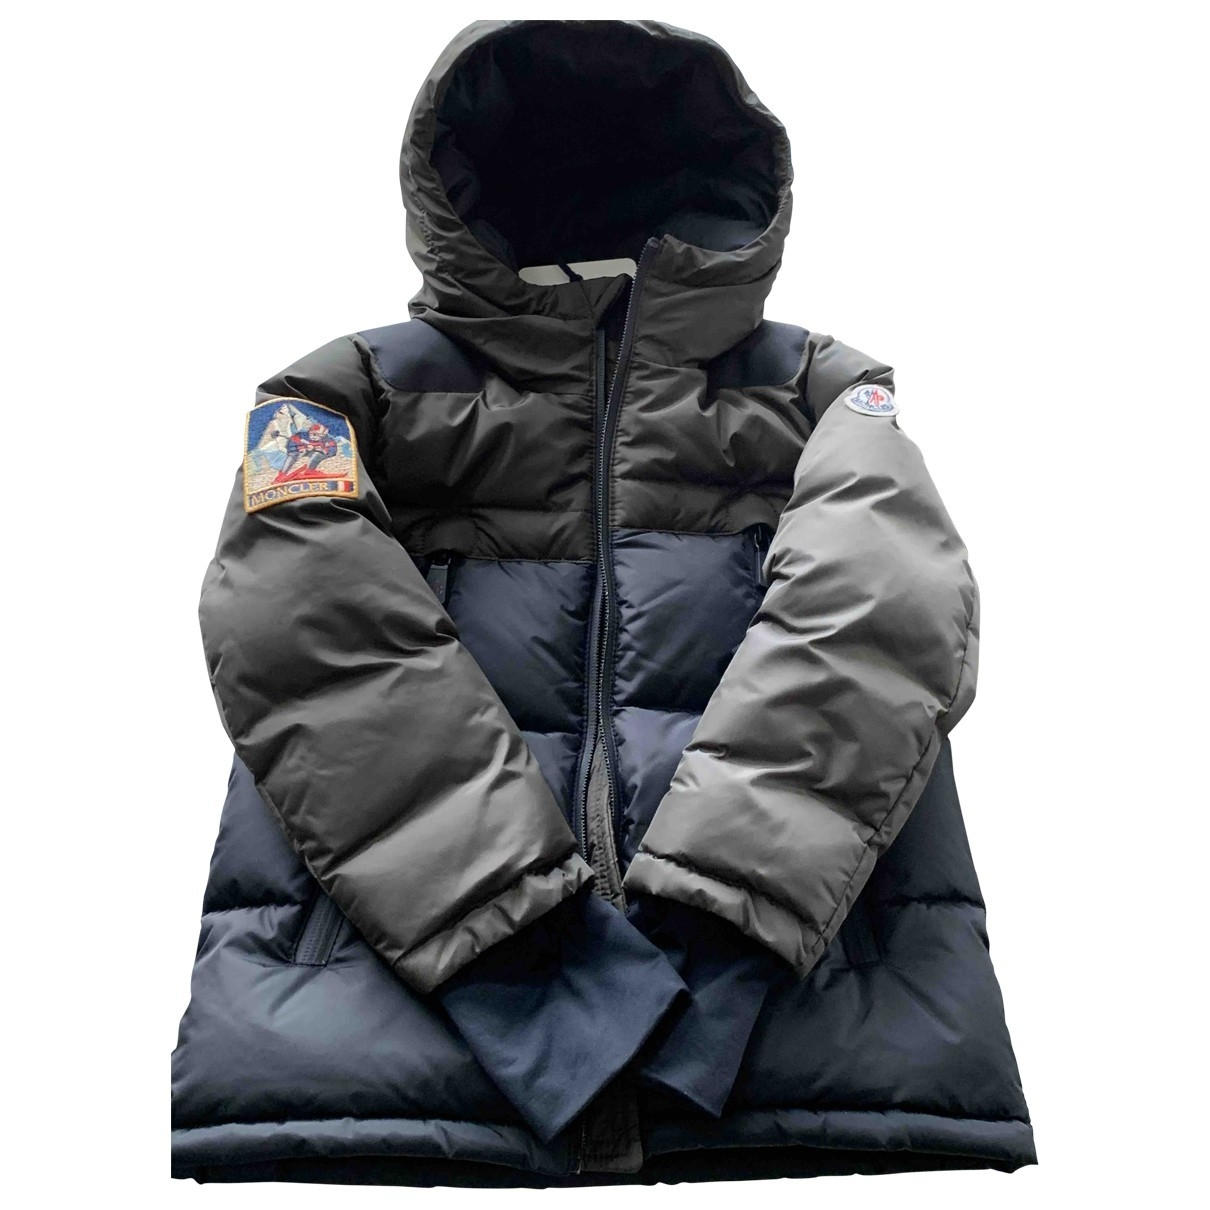 Moncler Classic jacket & coat for Kids 4 years - up to 102cm FR